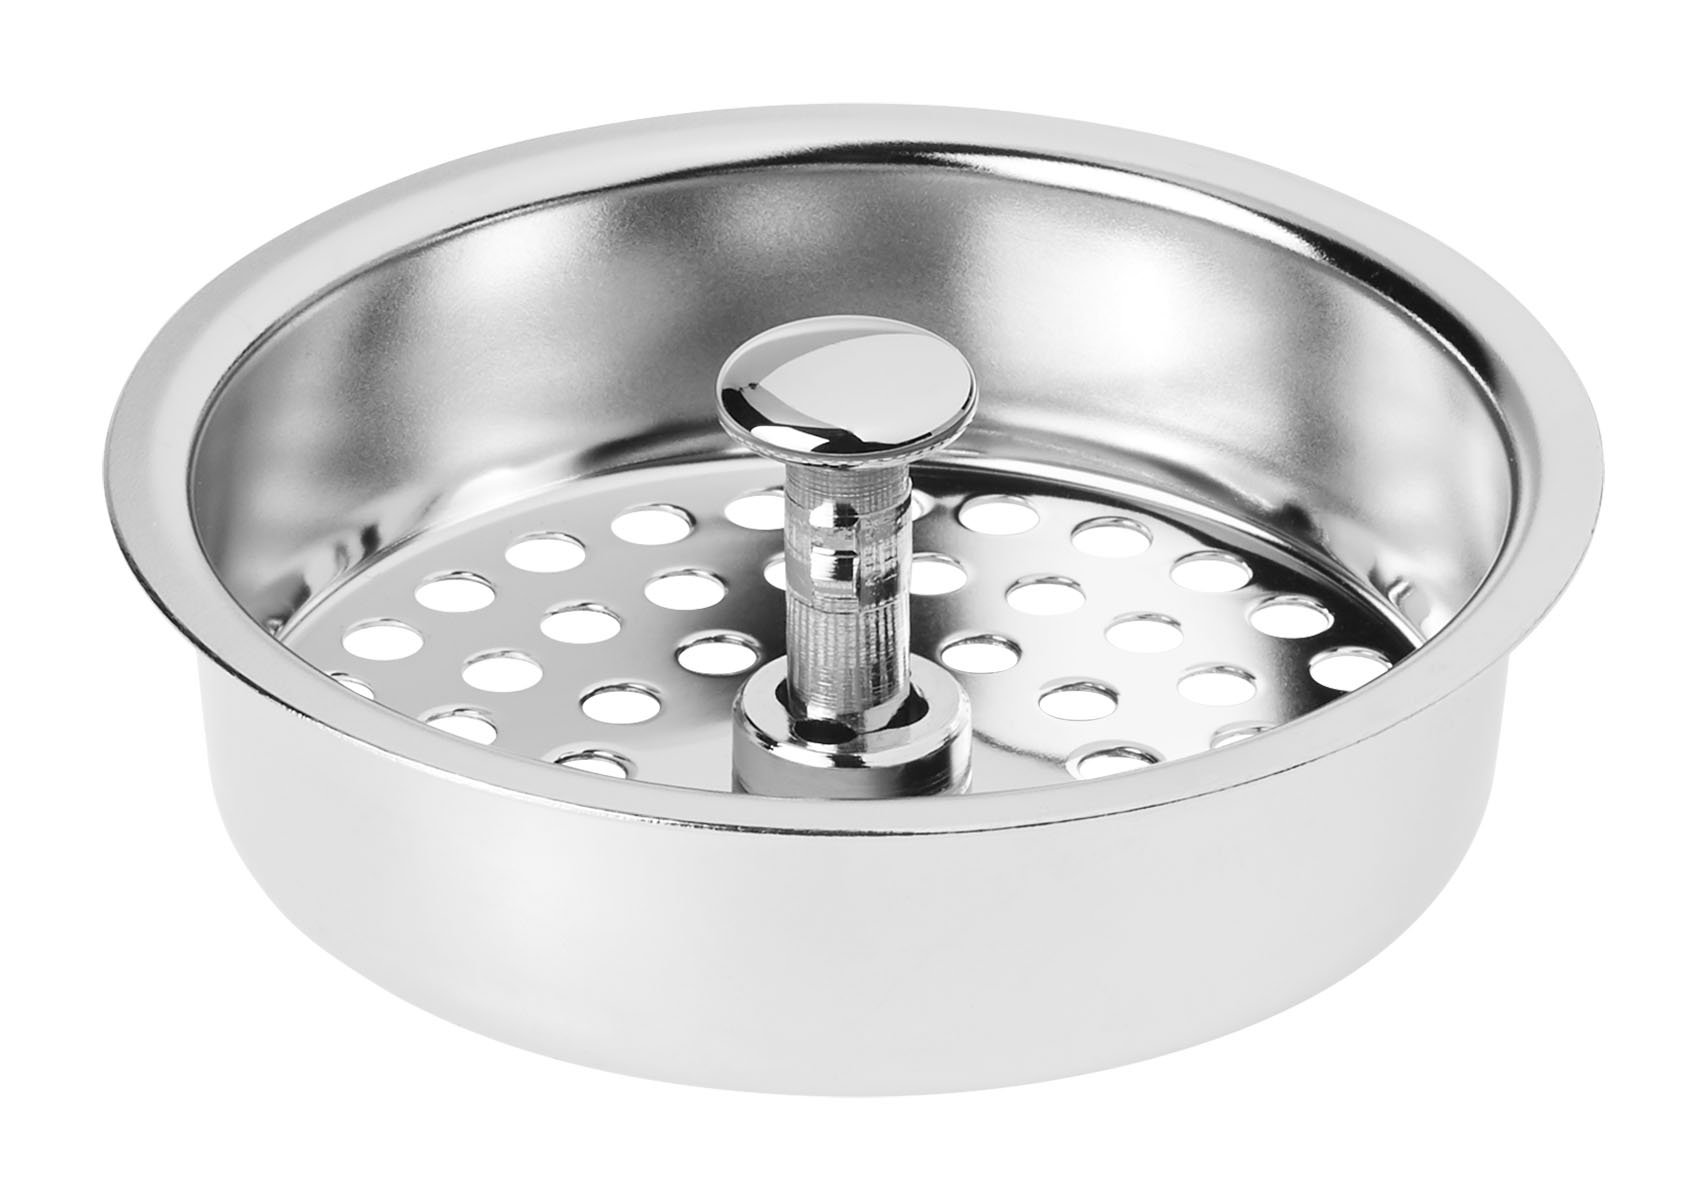 KOHLER GENUINE PART GP41398-CP BASKET FOR DUOSTRAINER - POLISHED CHROME by Kohler